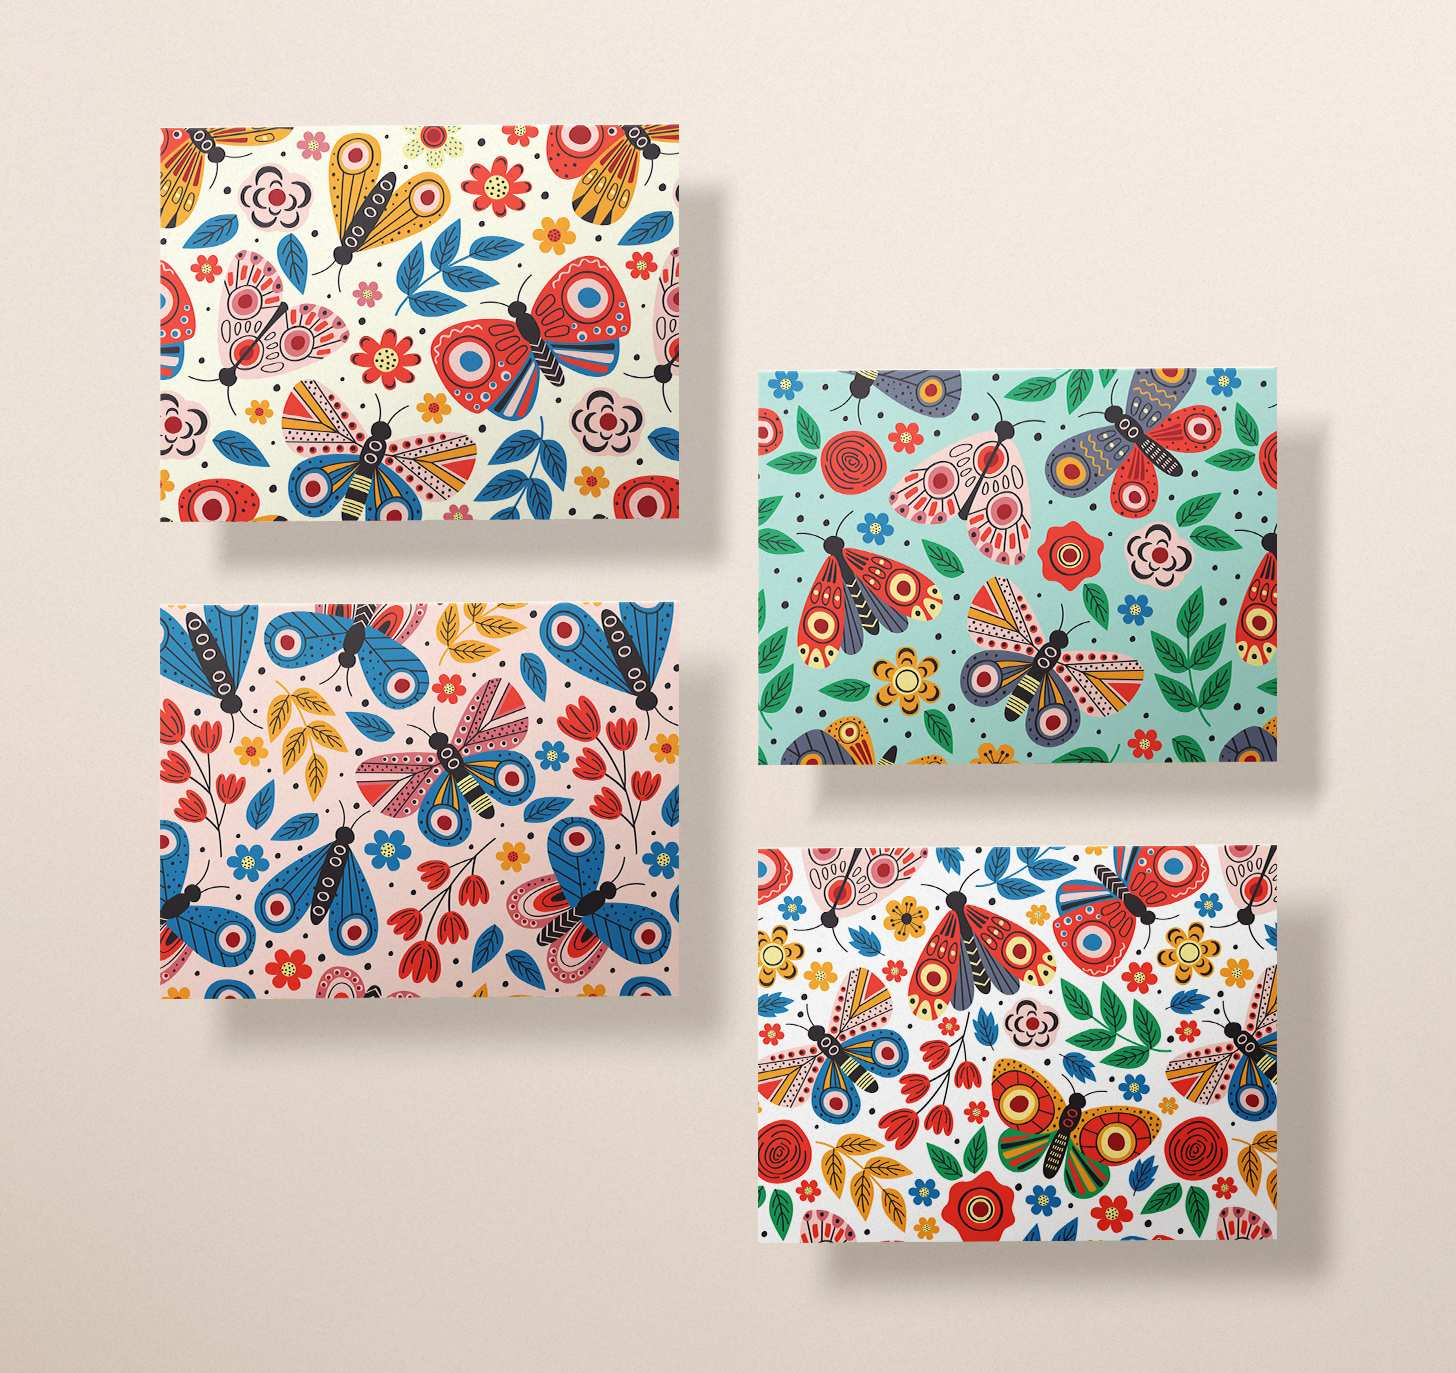 Four assorted multicolored butterfly cards with blue, pink, yellow, and white designs